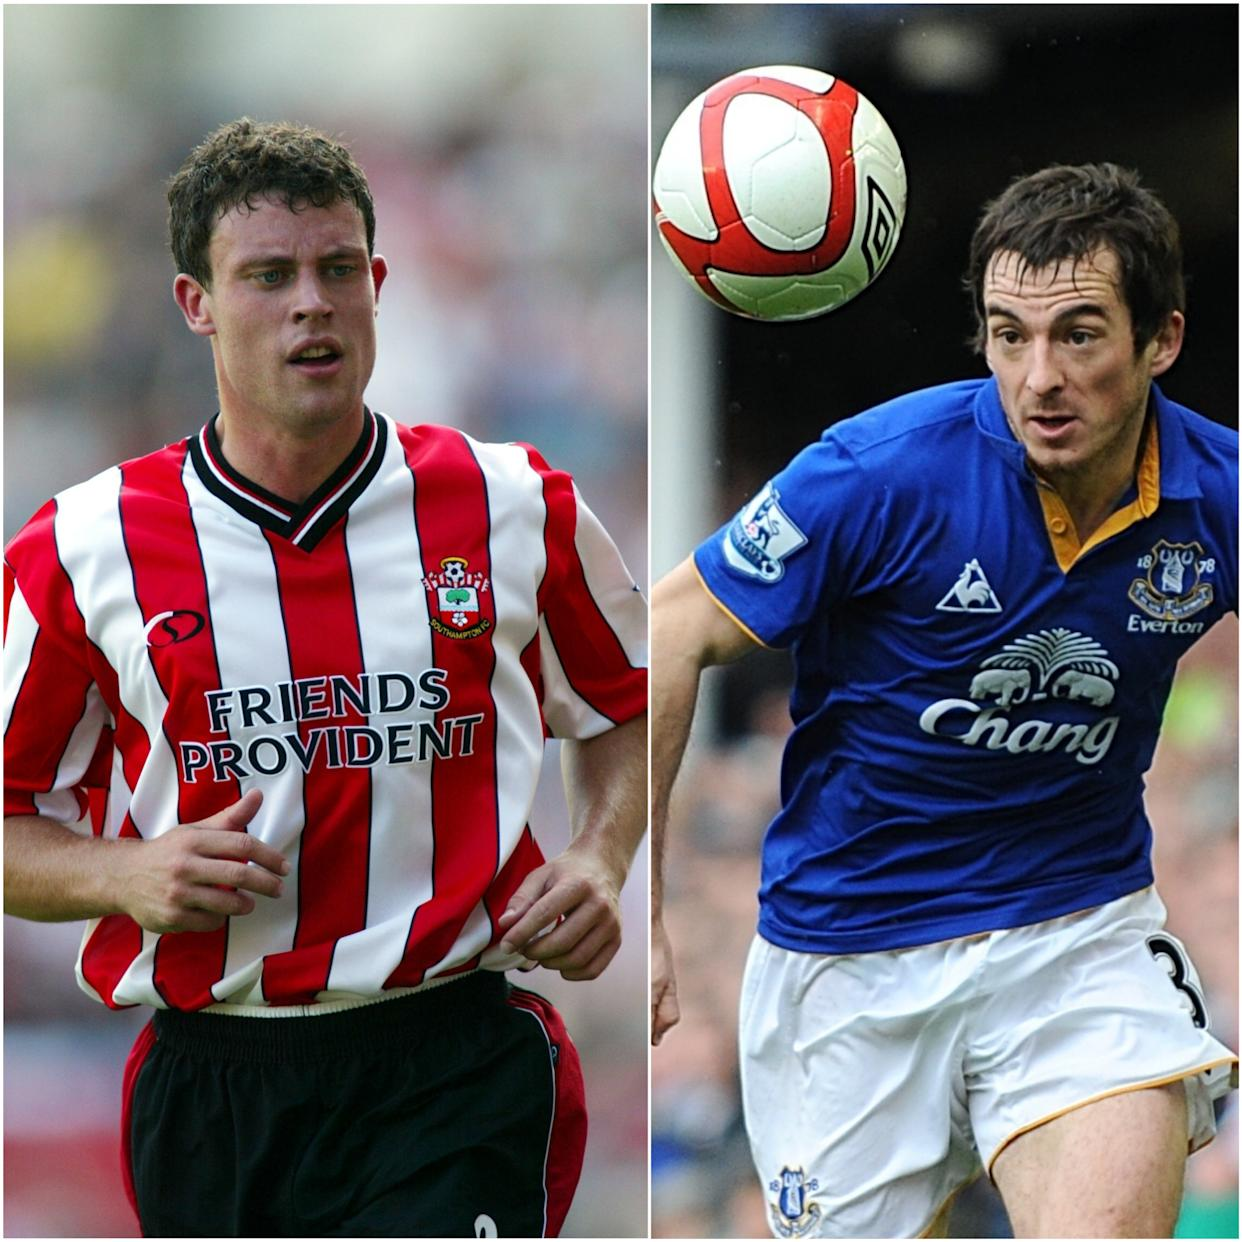 Wayne Bridge, left, and Leighton Baines